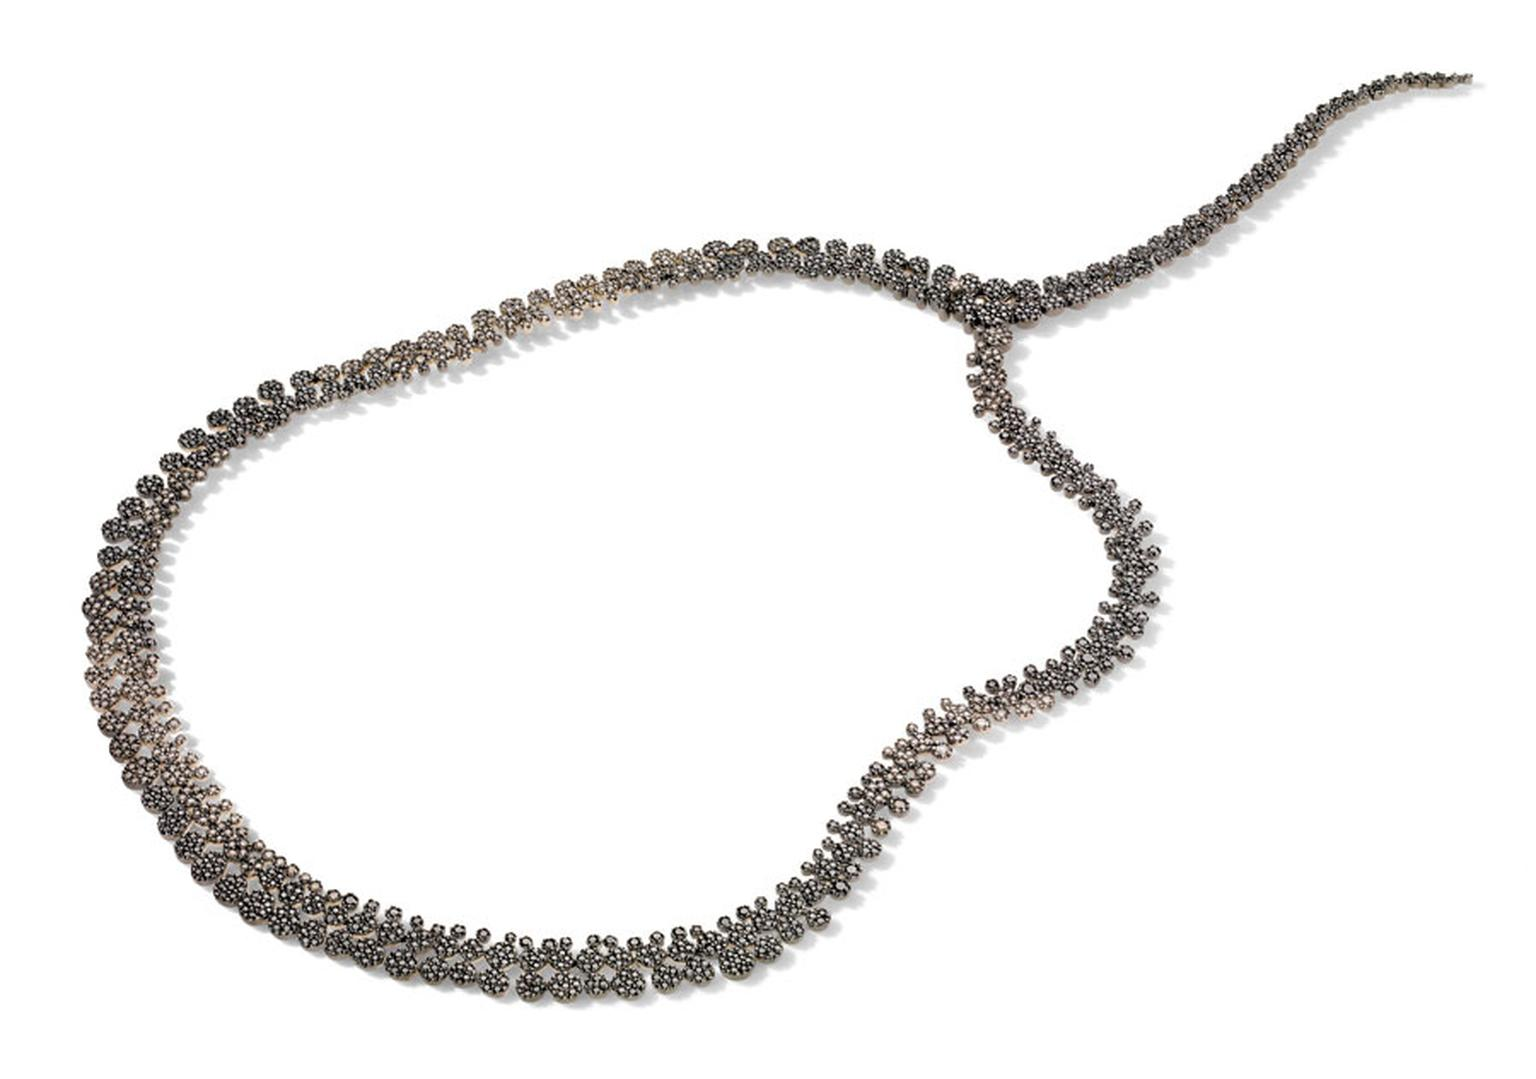 HStern-Necklace-in-Noble-Gold-black-and-cognac-diamonds-serpent-inspired.jpg